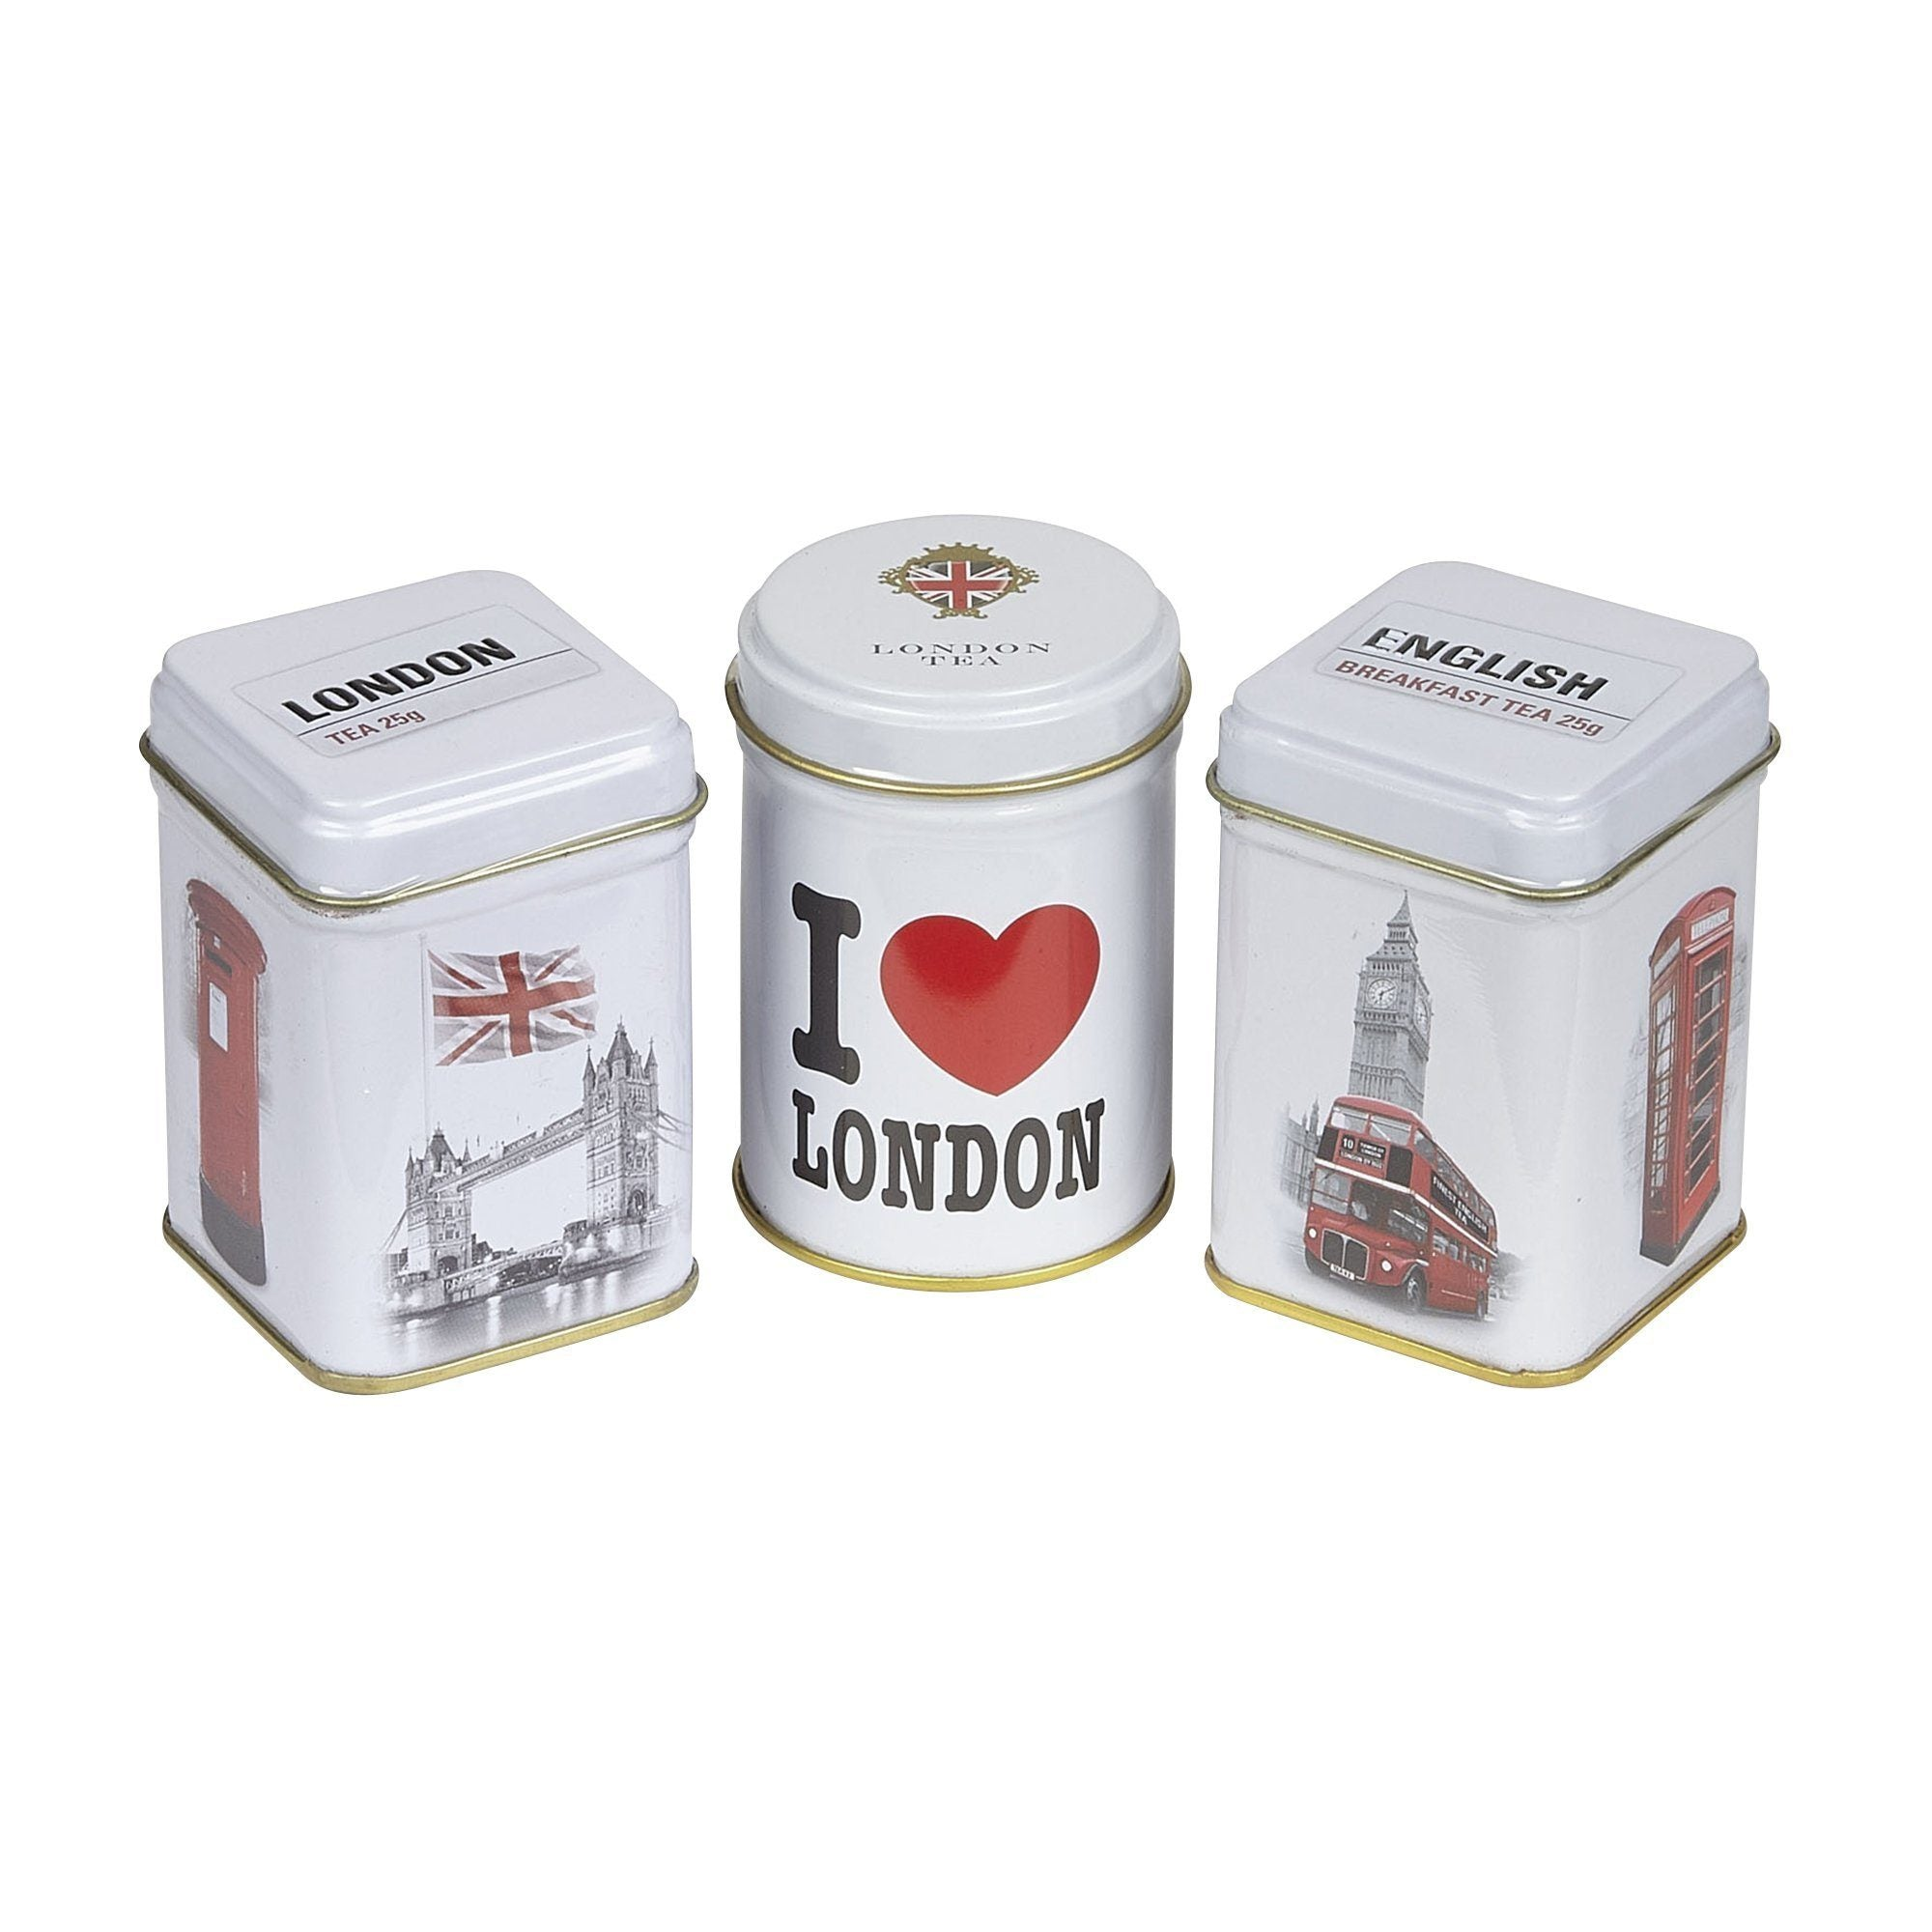 I Love London Triple Tea Selection Mini Gift Pack Black Tea New English Teas